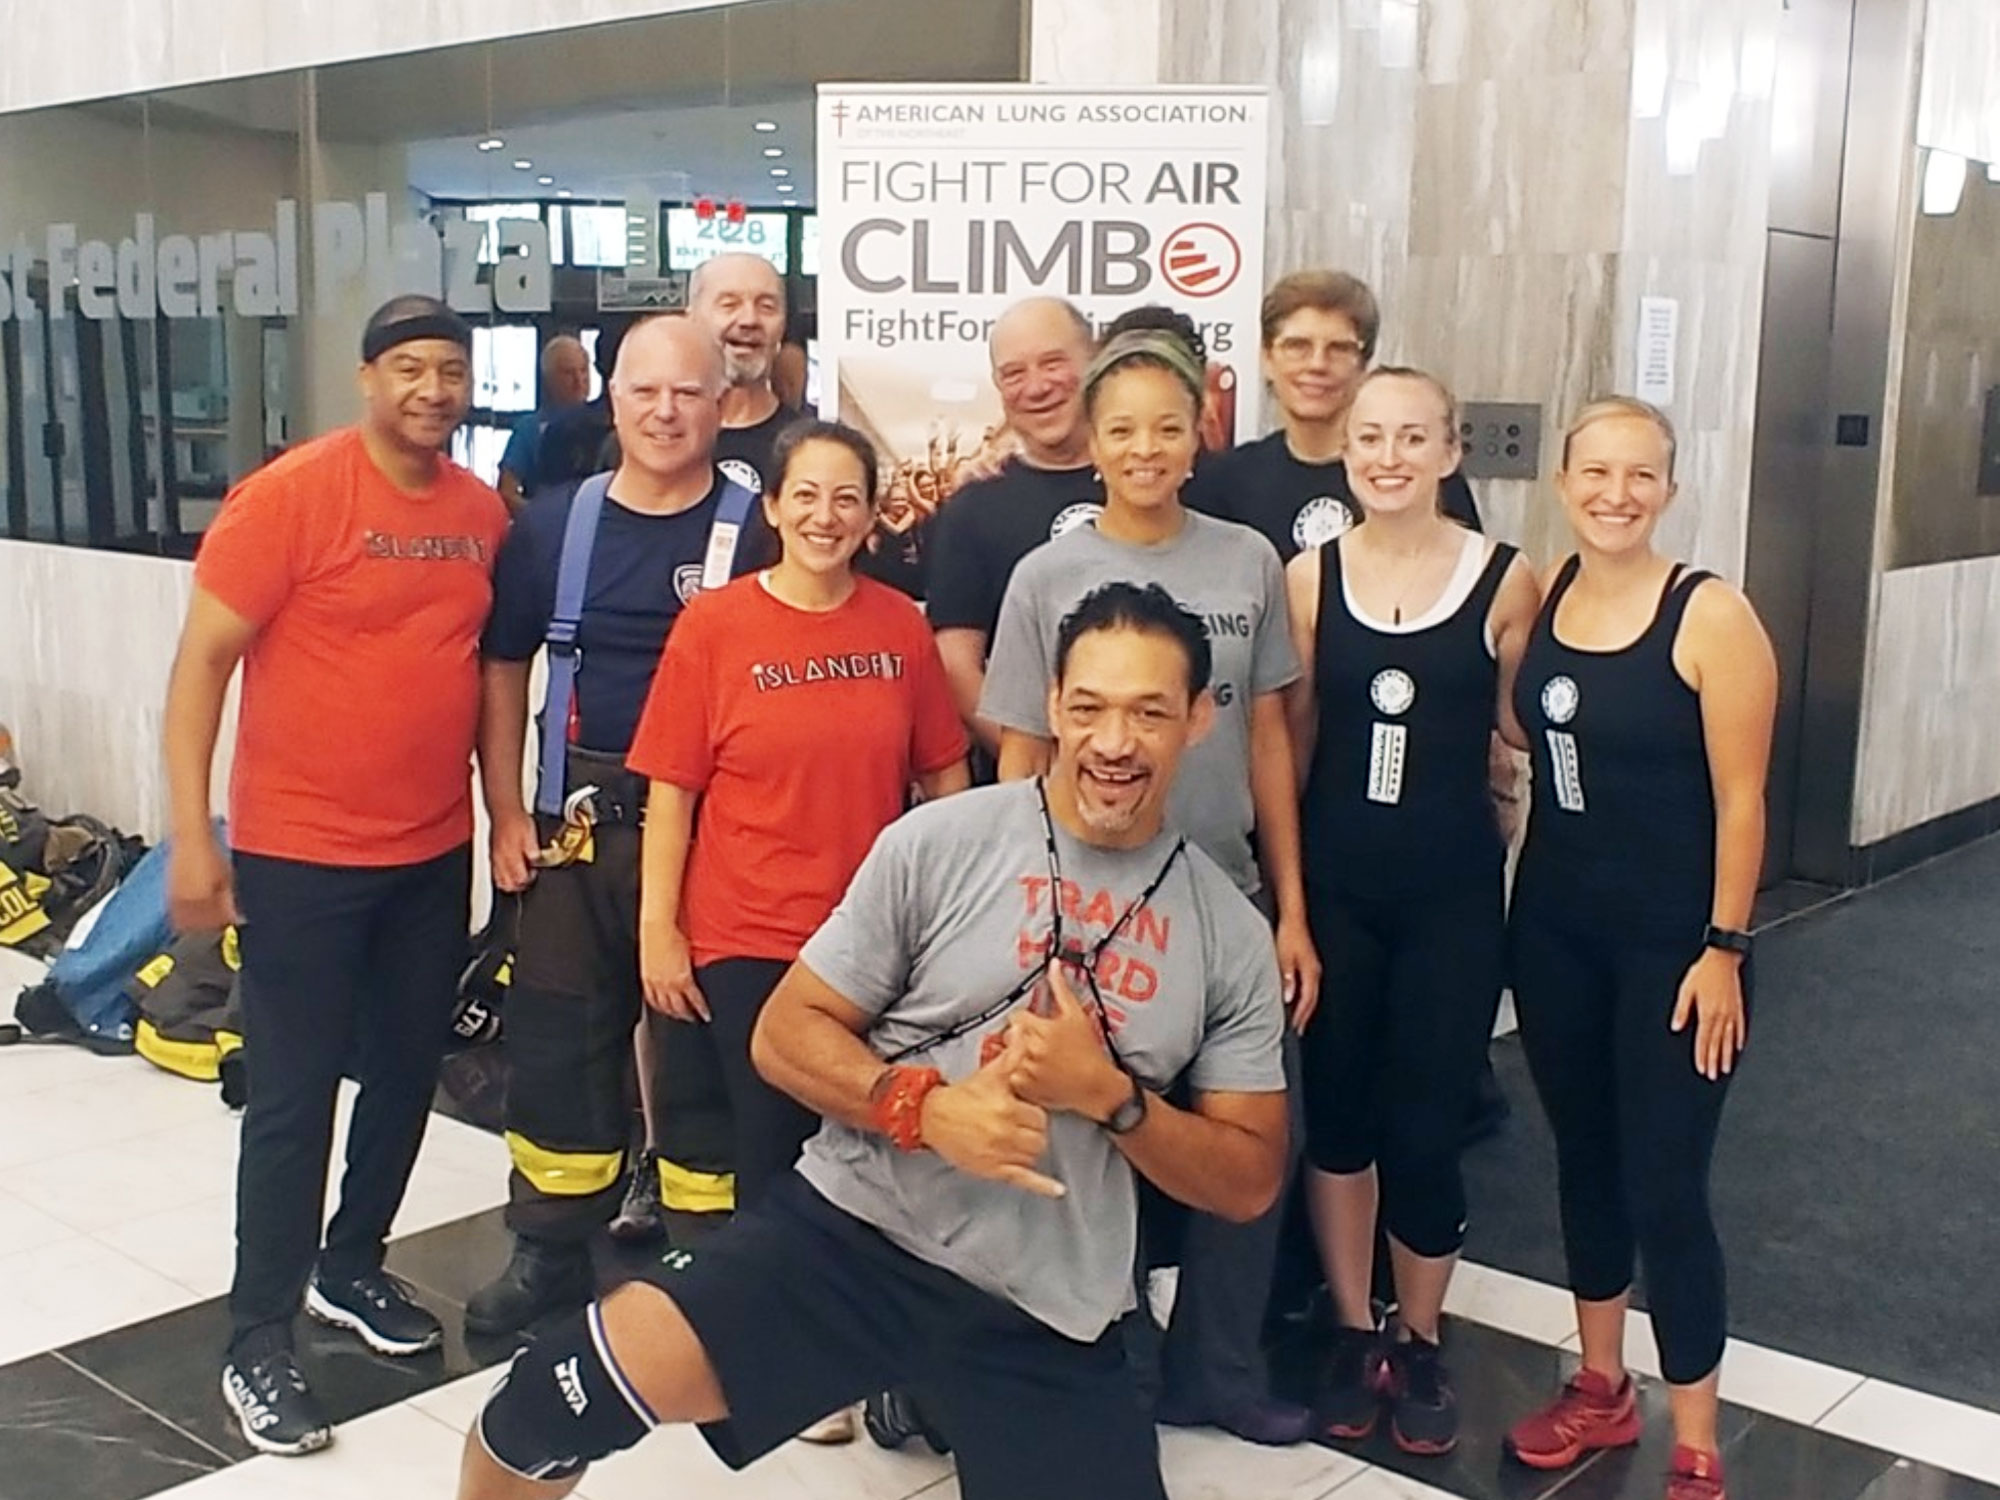 Fight for Air Climb Rochester